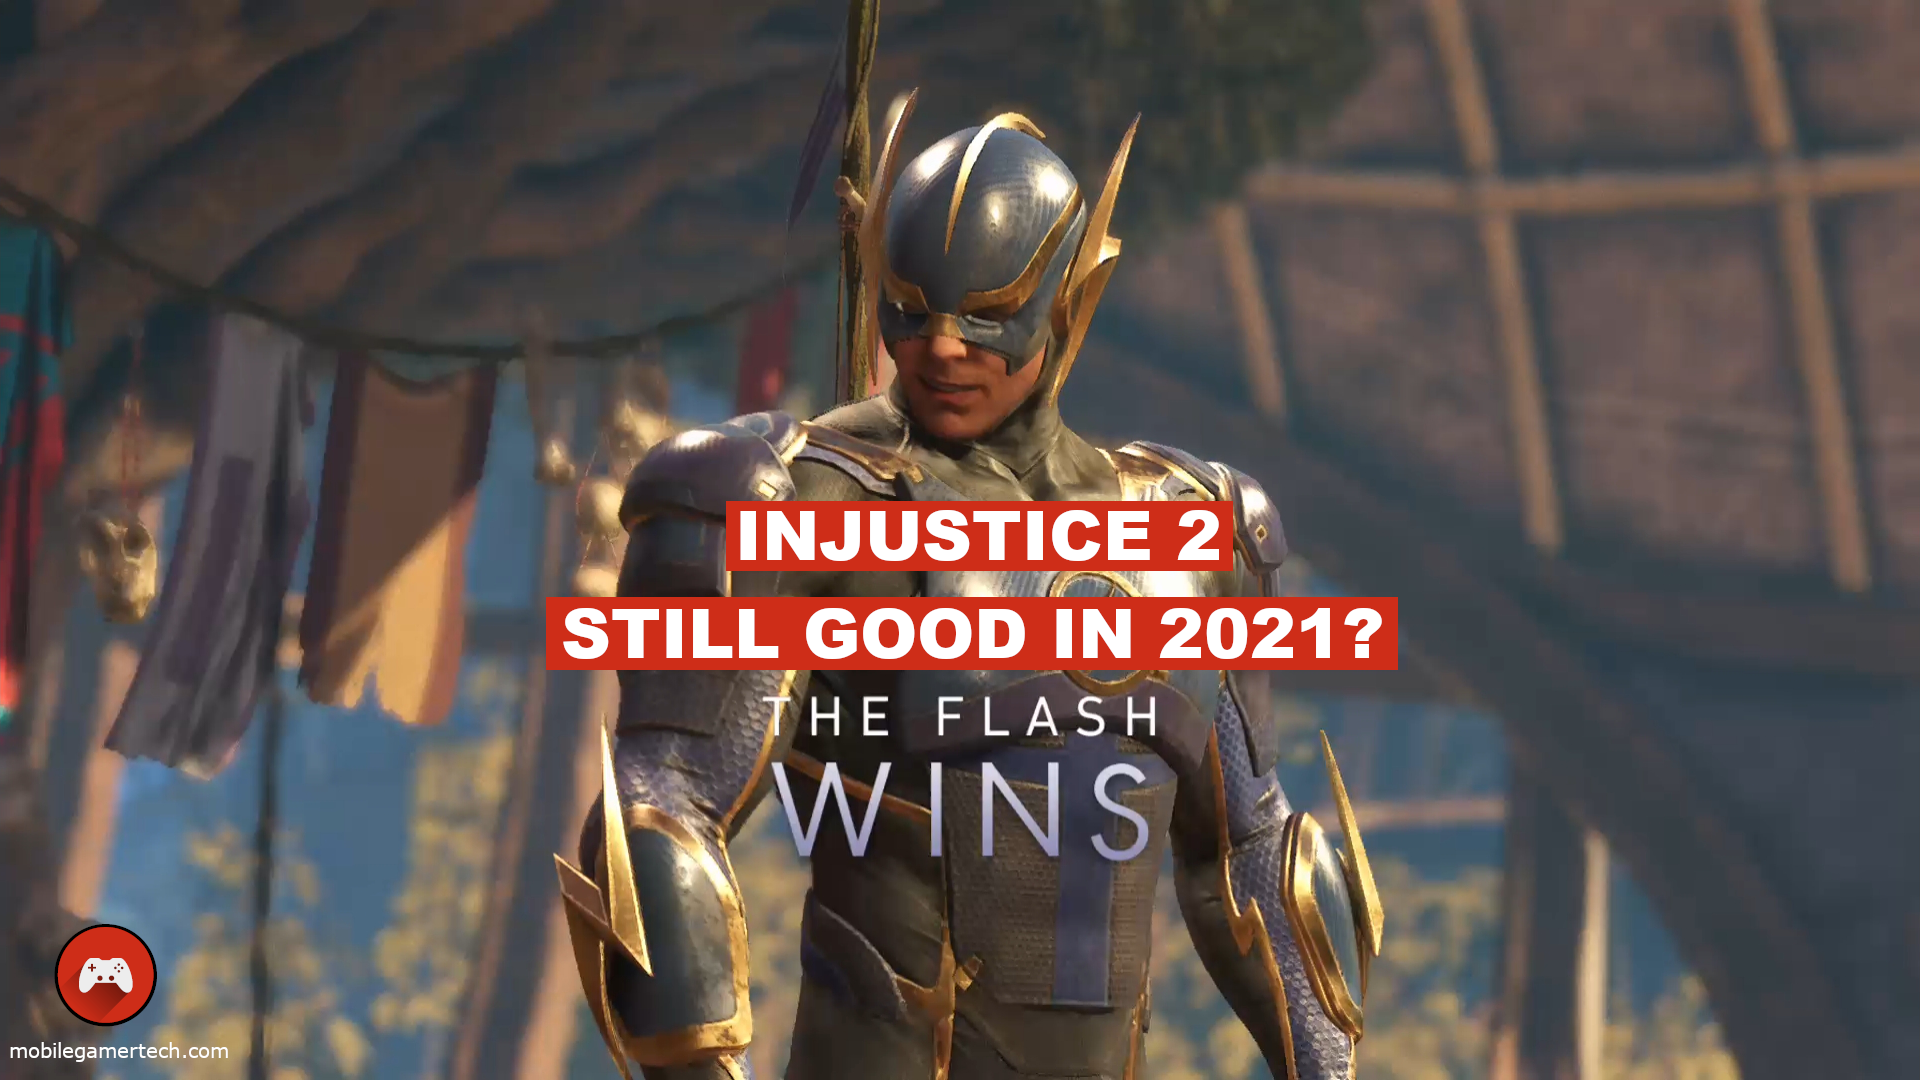 Injusticec 2 - Still Good In 2021